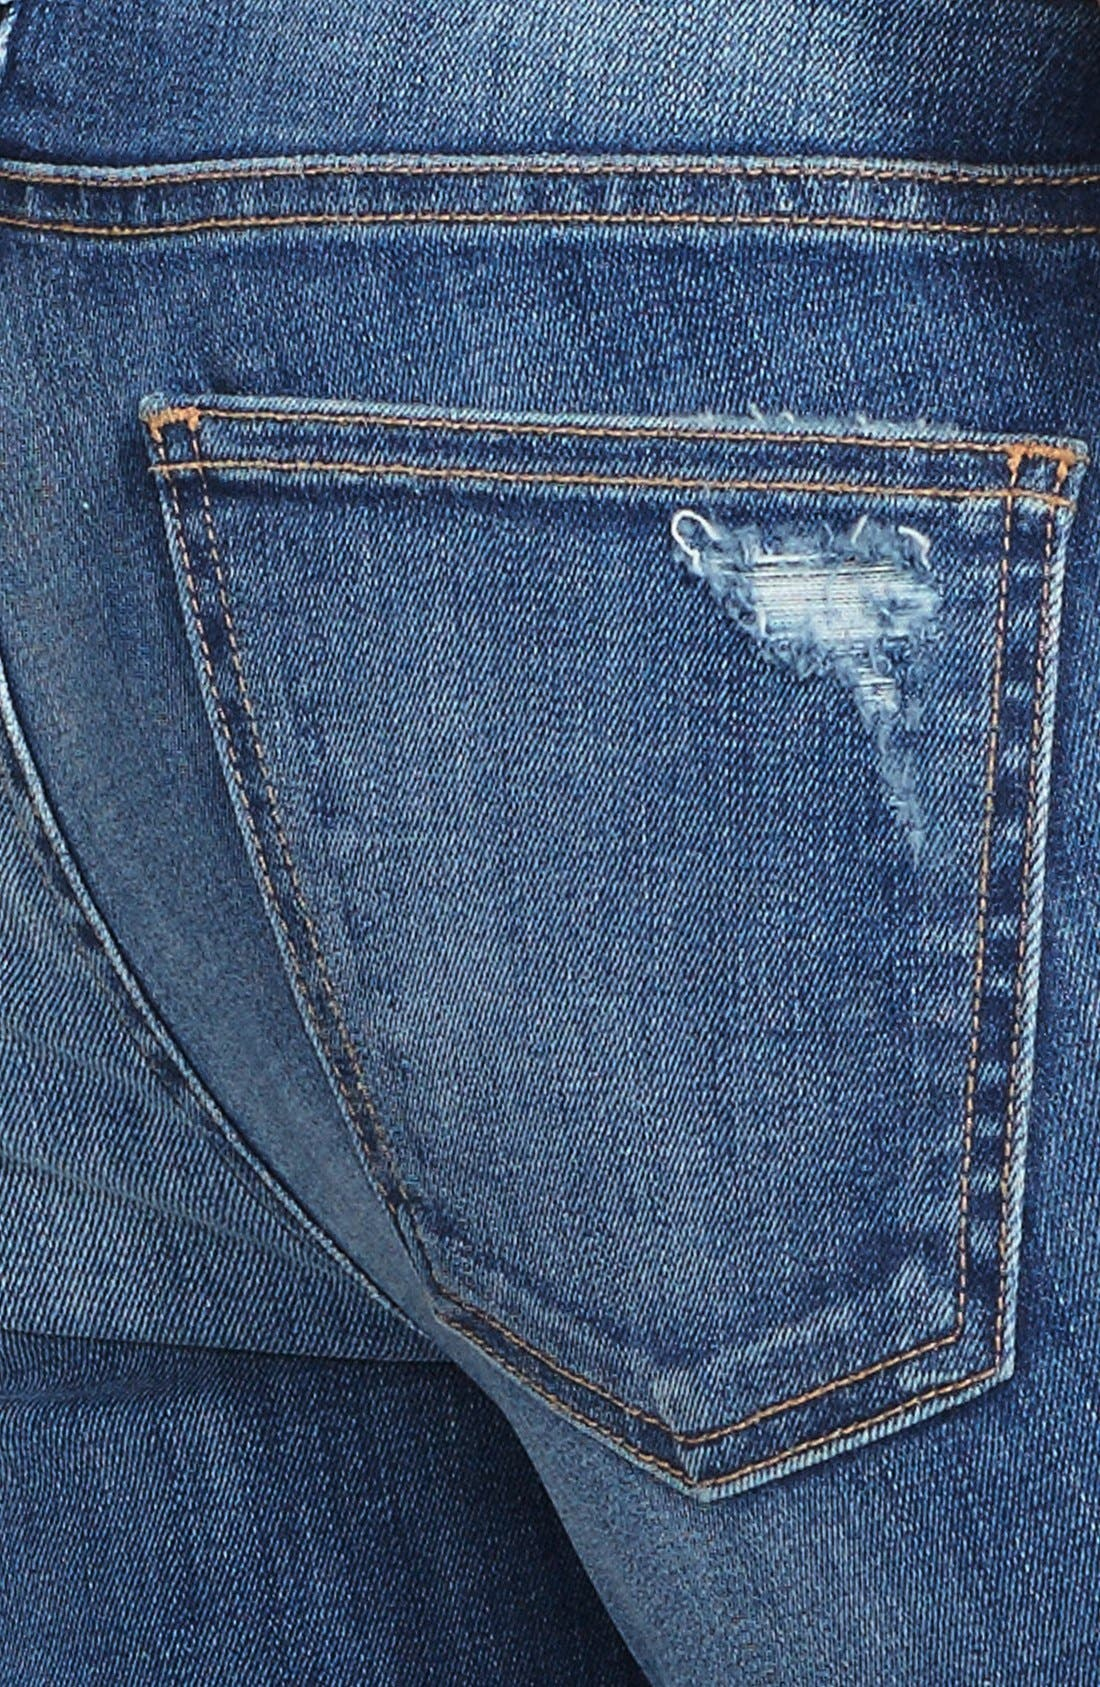 Alternate Image 3  - Current/Elliott 'The Stiletto' Destroyed Skinny Jeans (Niagara Destroy) (Nordstrom Exclusive)